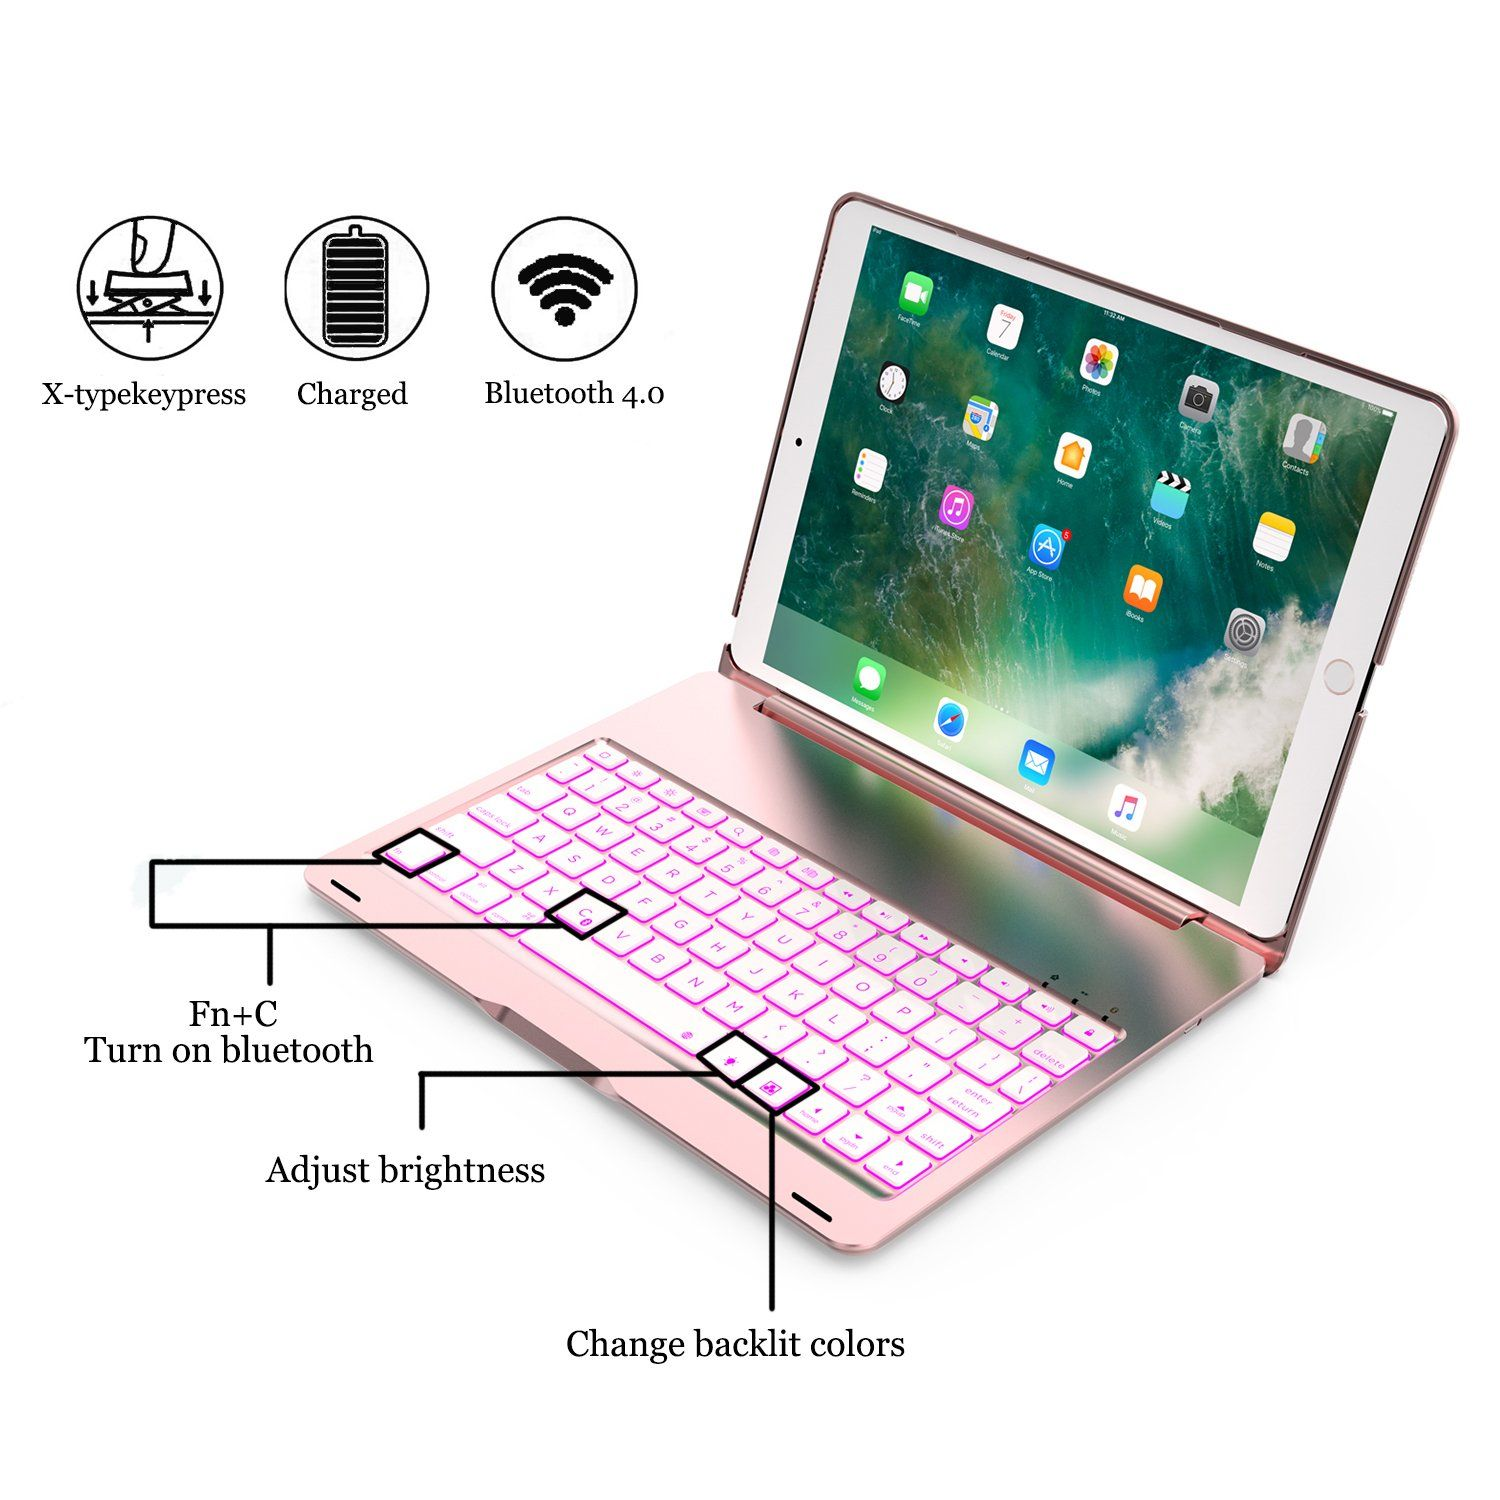 iPad Air 3rd Generation 360 Rotatable iPad 7th Generation Case with Keyboard iPad Air 10.5 2019 iPad Keyboard Case for iPad 10.2 2019 Backlit iPad Pro 10.5 2017 White Wireless